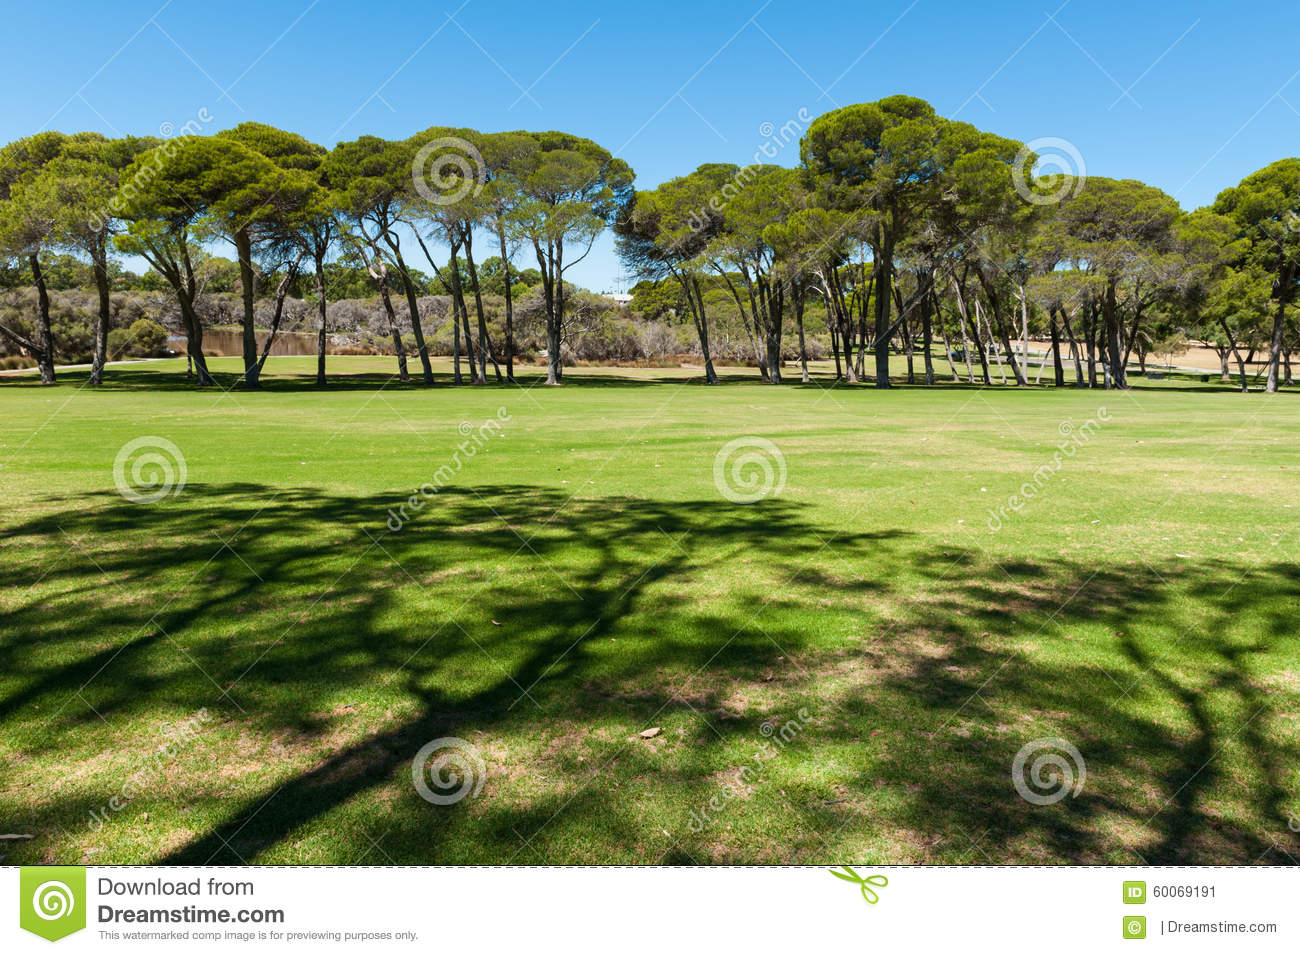 Green Field In The Park Stock Image. Image Of Tree, Plant